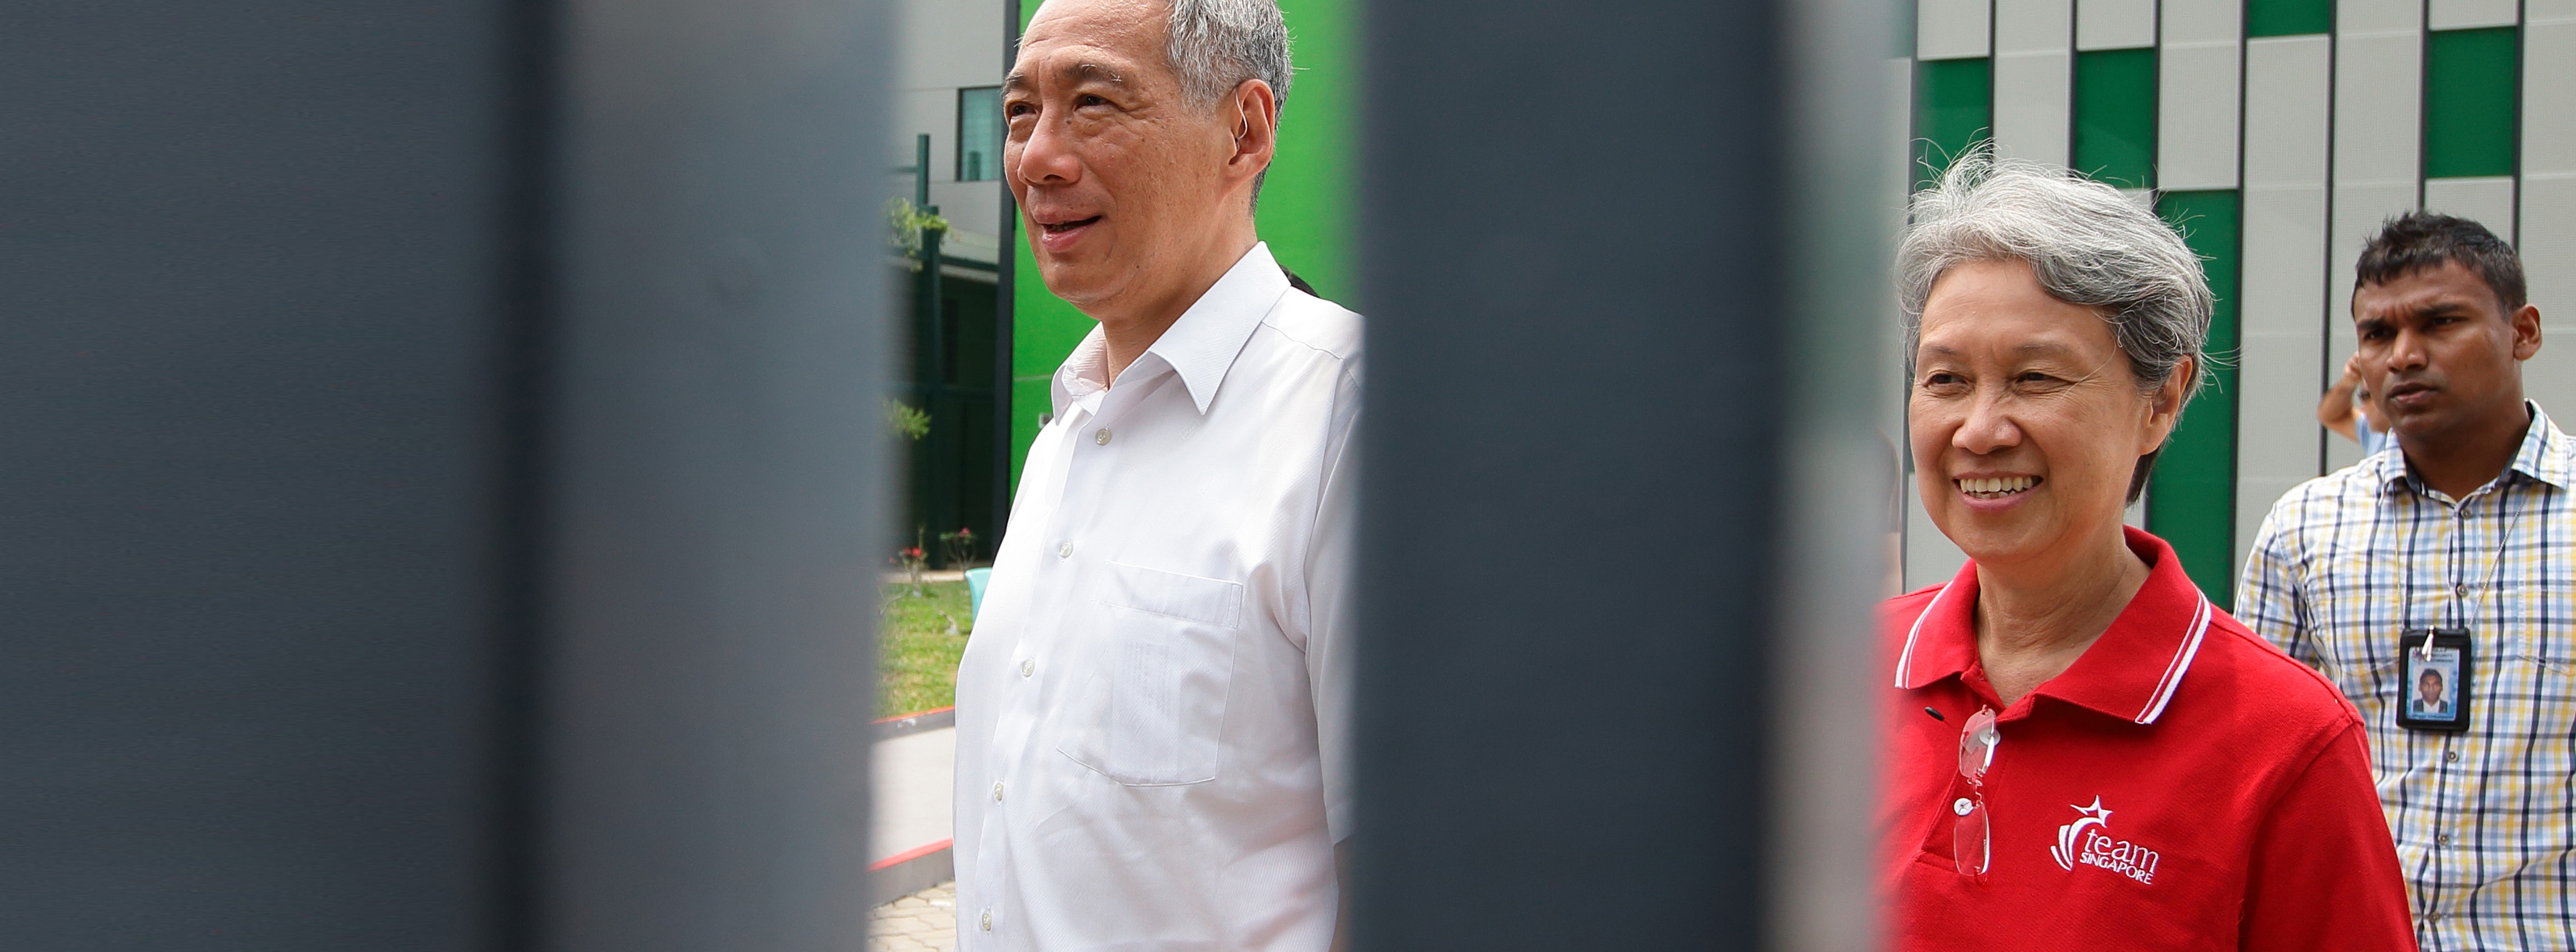 Singapore Prime Minister Lee Hsien Loong and wife, Ho Ching, in September 2015 (Suhaimi Abdullah/ Getty Images)